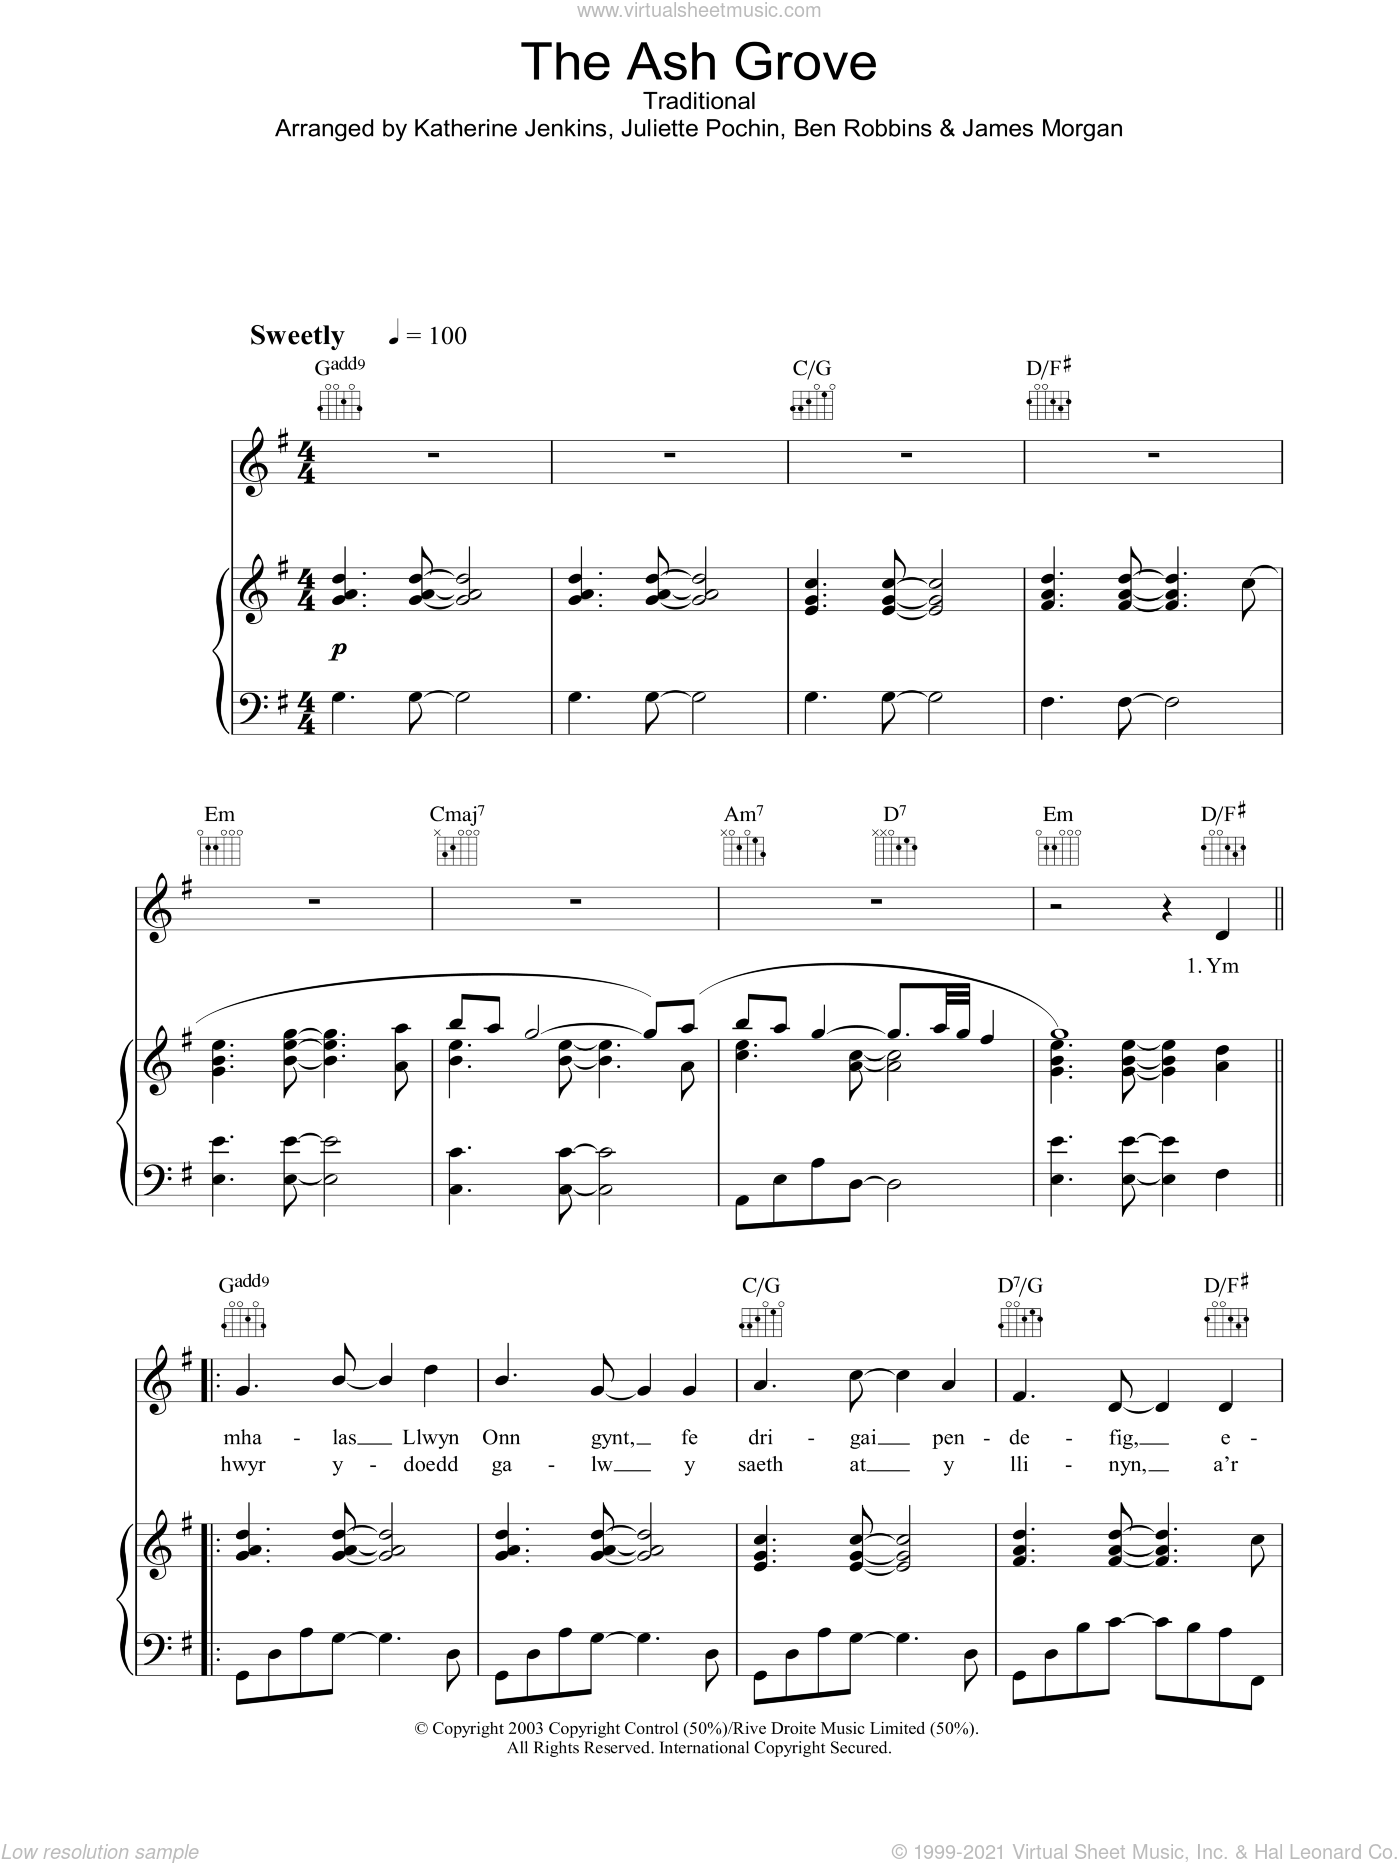 The Ash Grove sheet music for voice, piano or guitar by Katherine Jenkins, Ben Robbins, James Morgan, Juliette Pochin and Miscellaneous, classical score, intermediate skill level